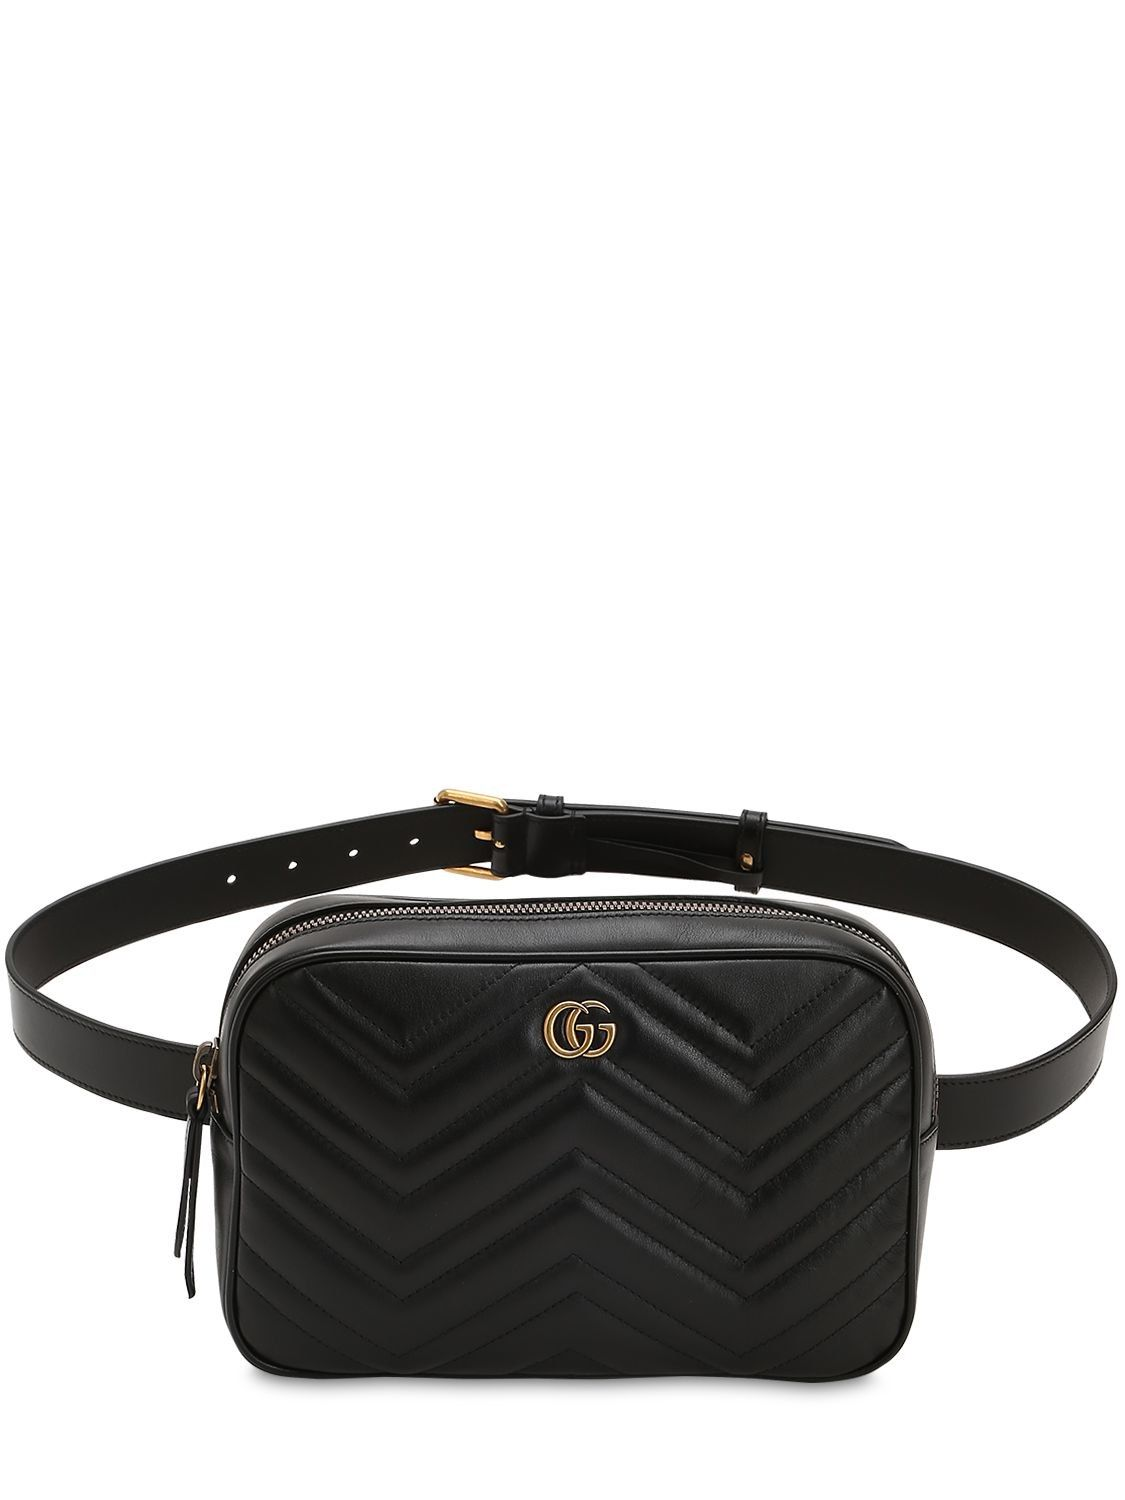 a8f6957611e GUCCI GG MARMONT 2.0 QUILTED LEATHER BELT PACK.  gucci  bags  leather  belt  bags  lining